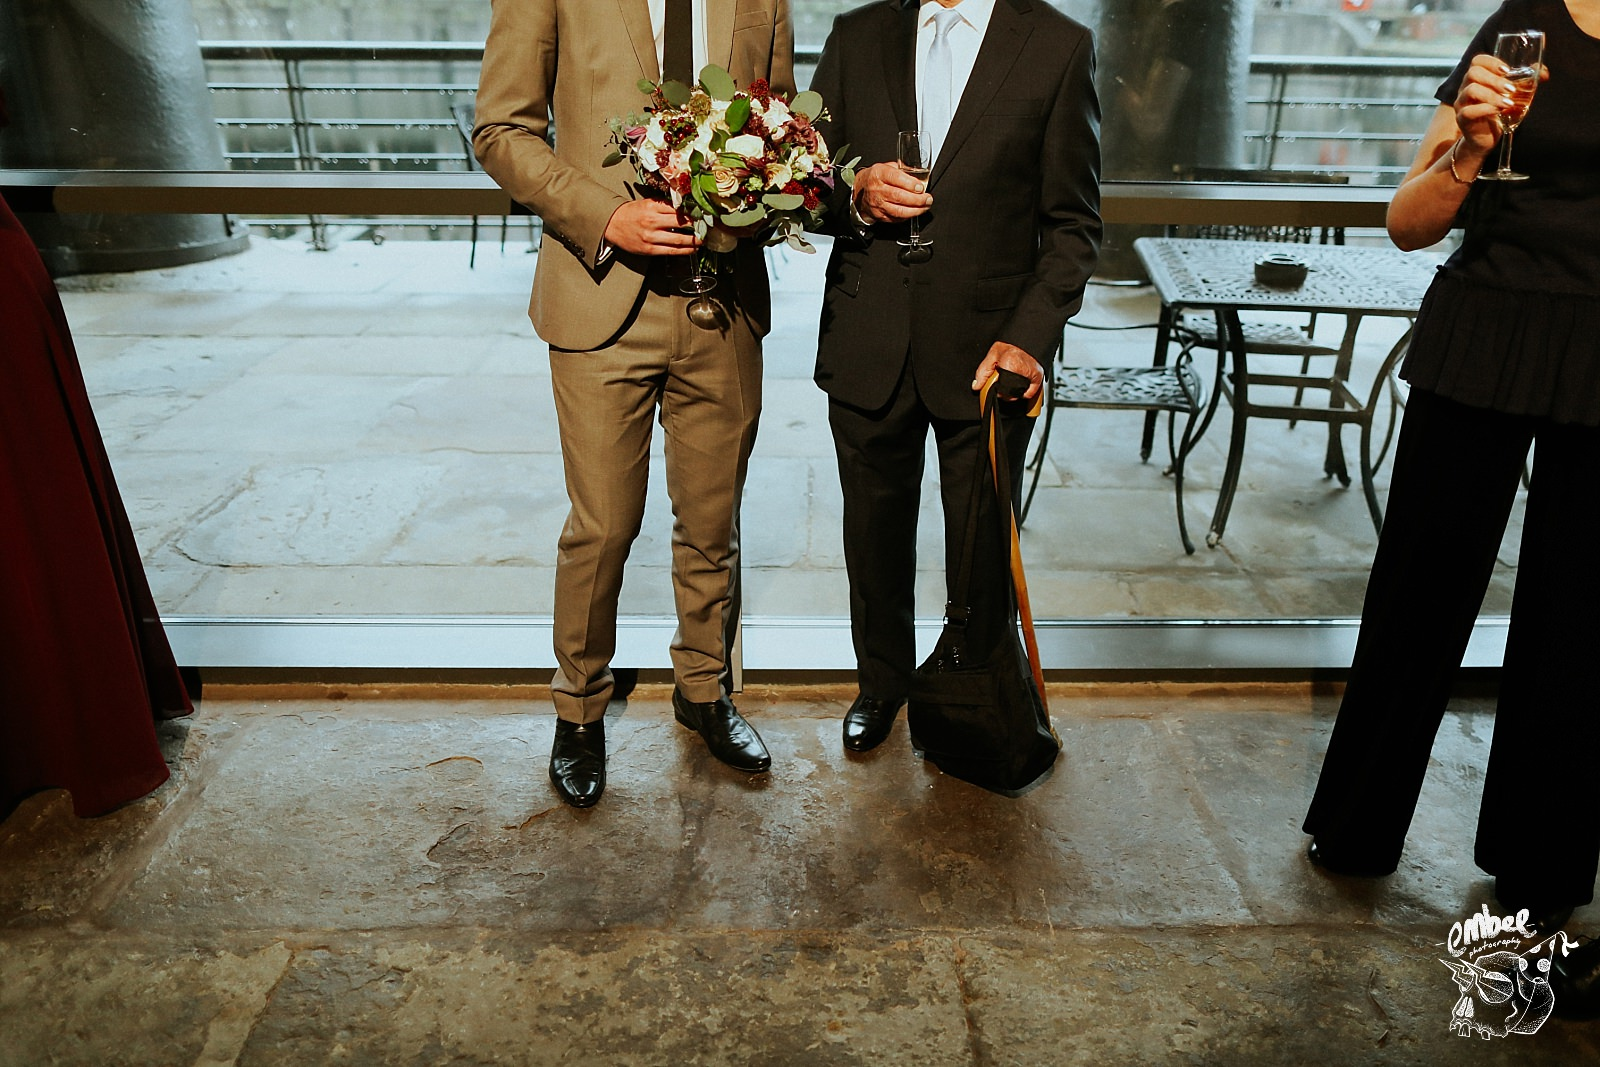 lower profile of two wedding guest, one is holding flowers